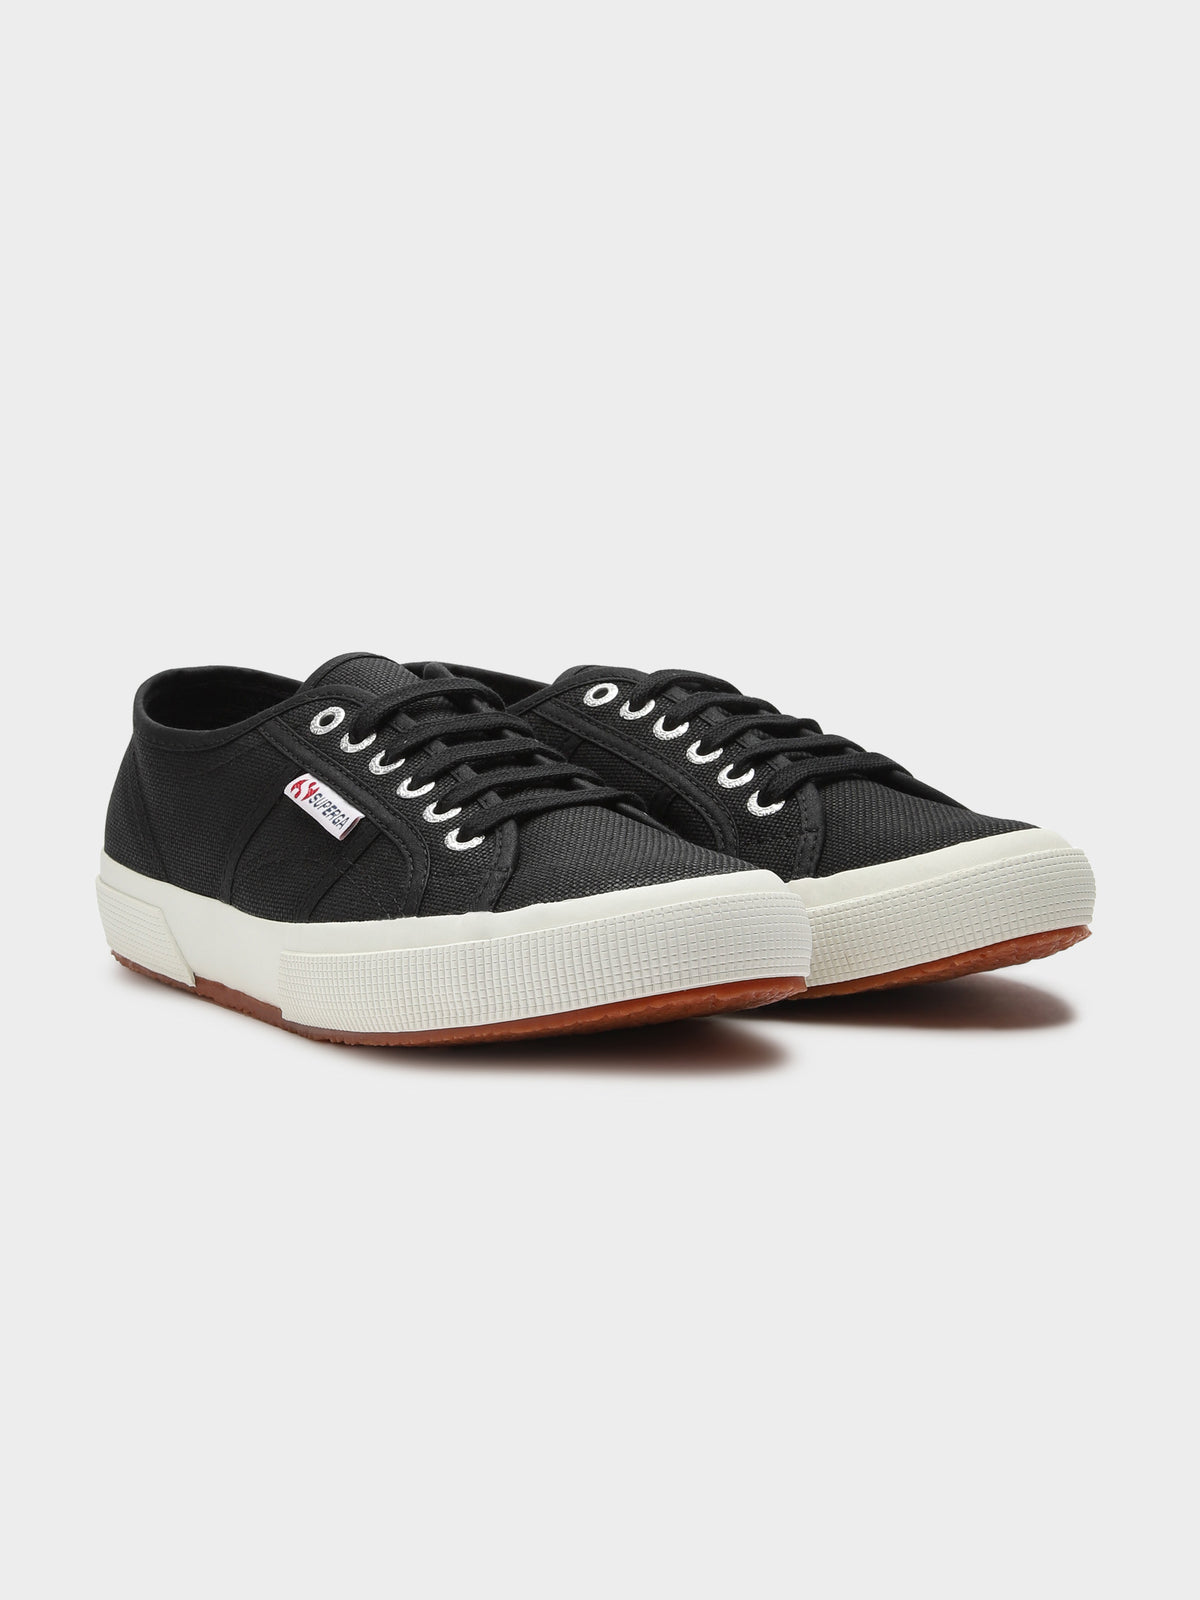 Unisex 2750 Cotu Classic Sneakers in Black